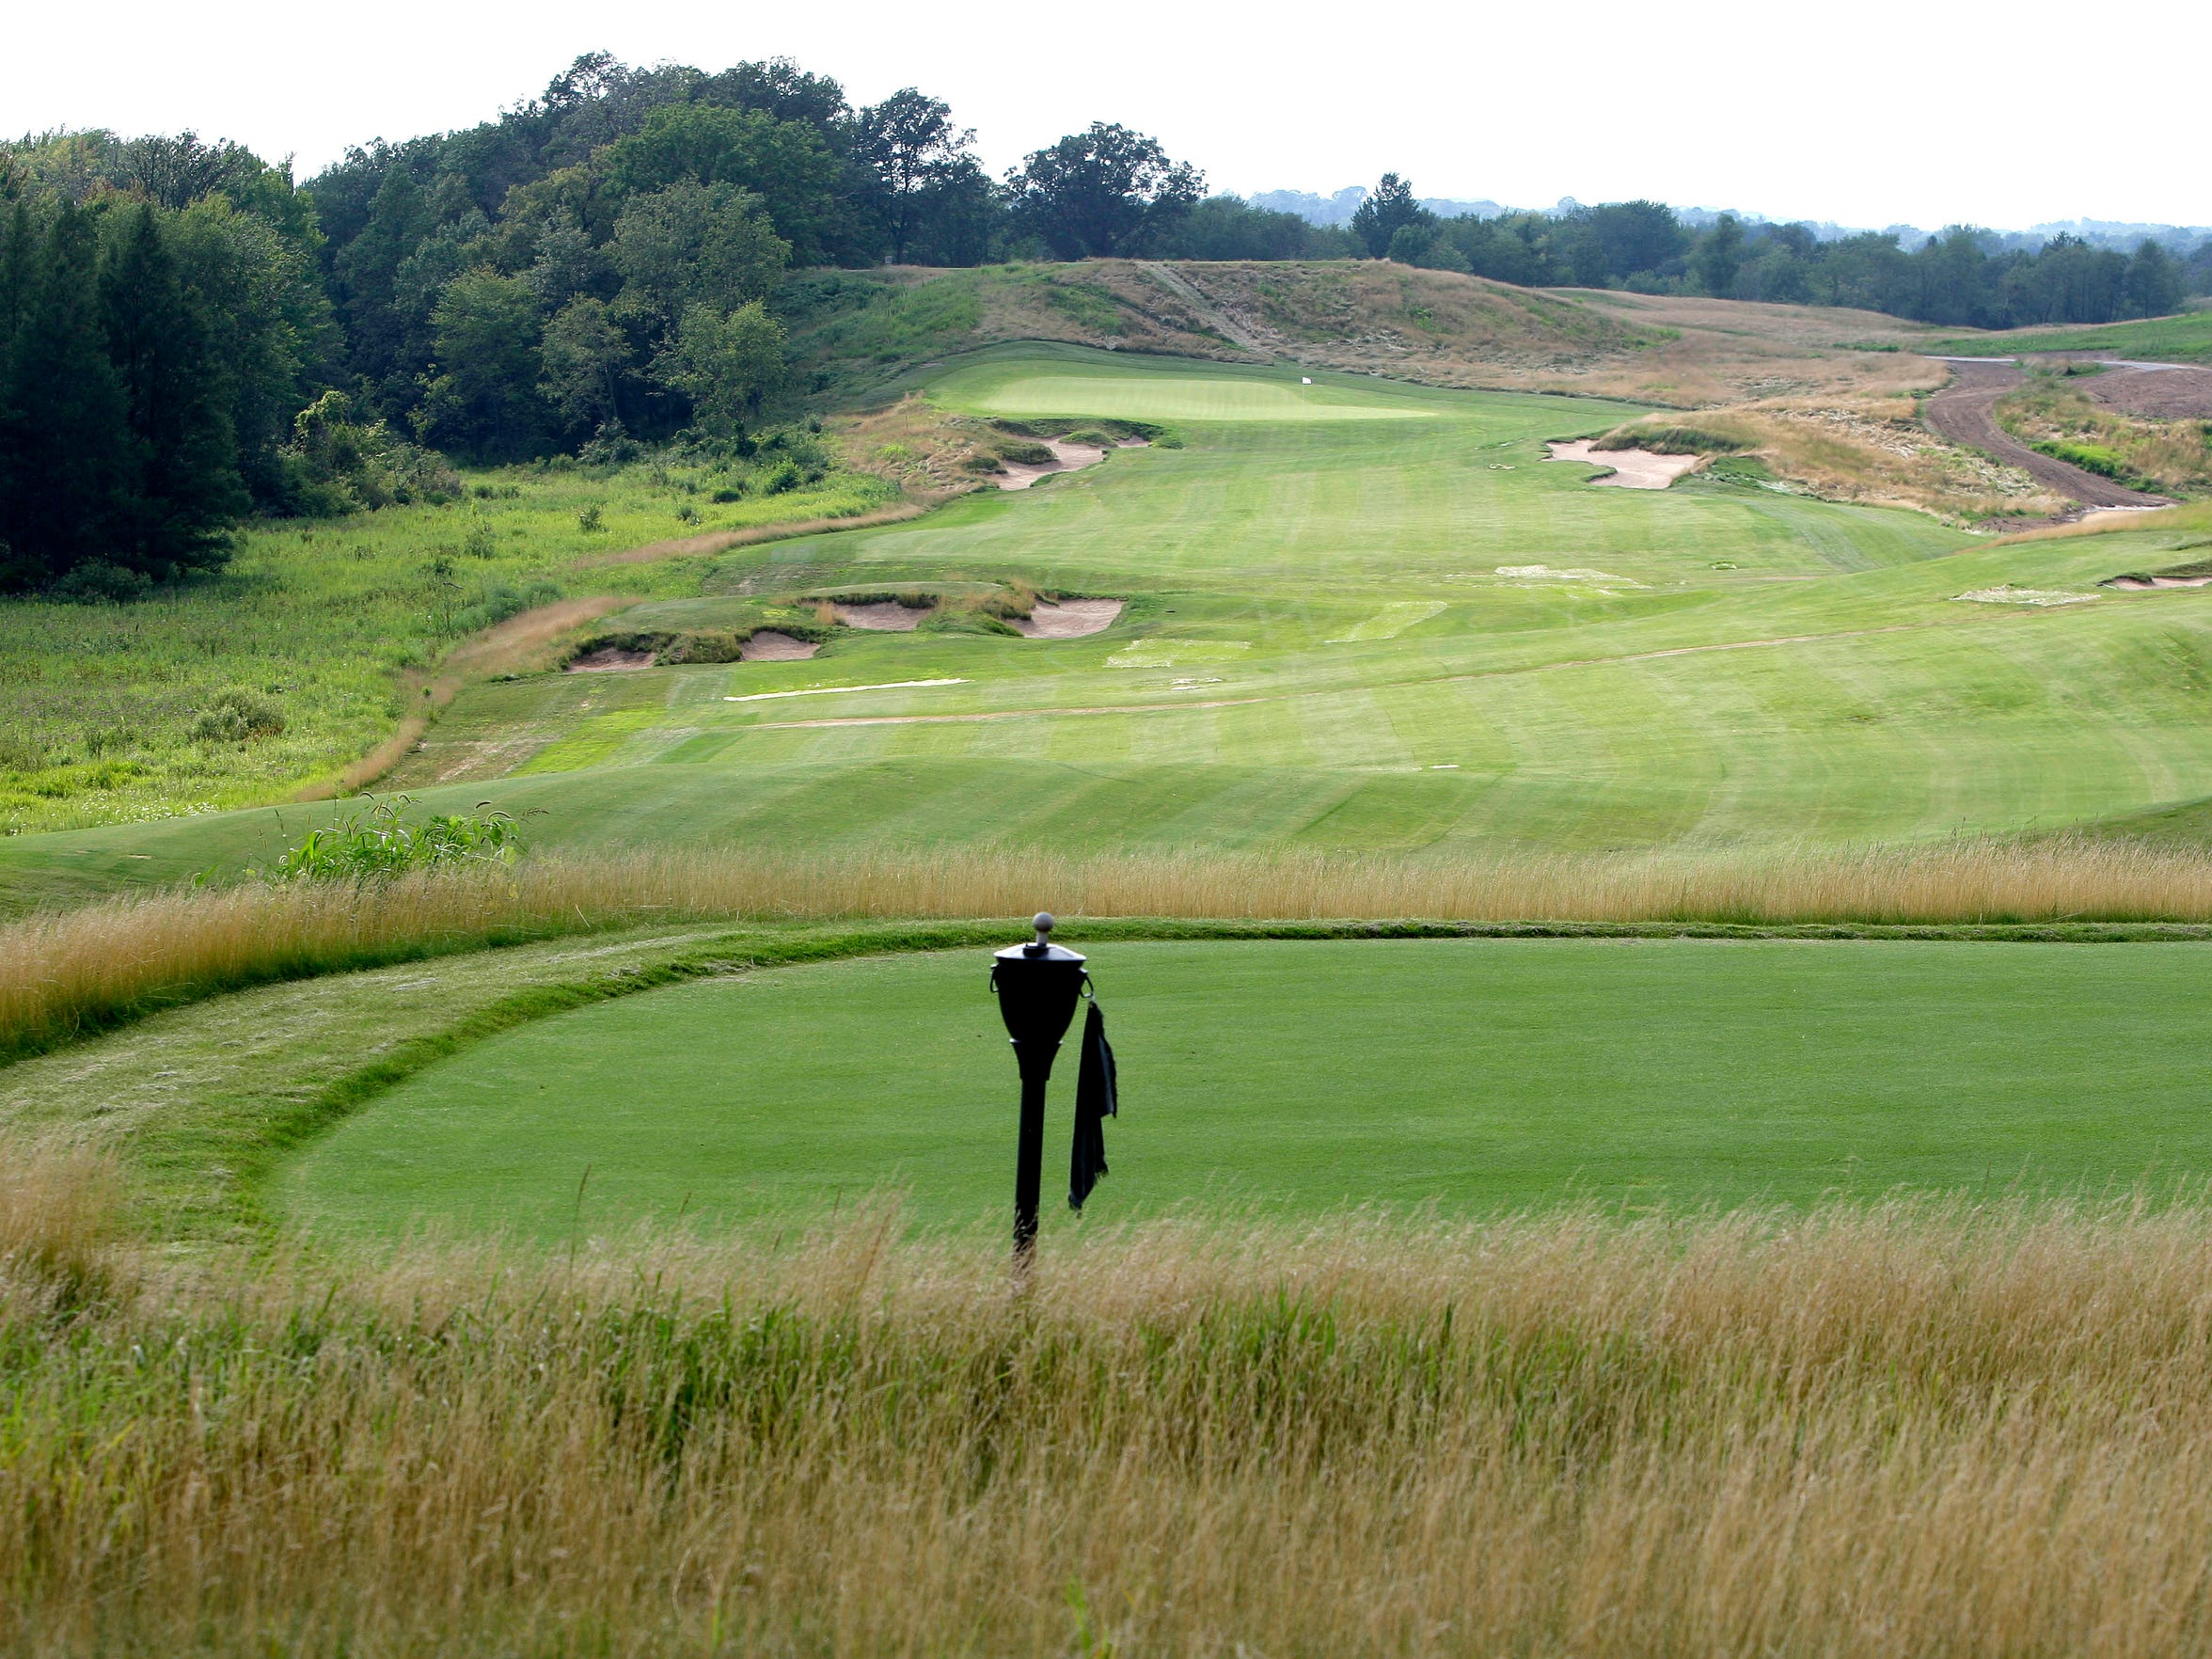 When Erin Hills reopened in the summer of 2010 after Andy Ziegler had taken over, it had become a walking-only golf course, in part to help the struggling fescue fairways have a chance to fill in and mature. This photo was taken in July 2010 from the tee box of the par-4 third hole.